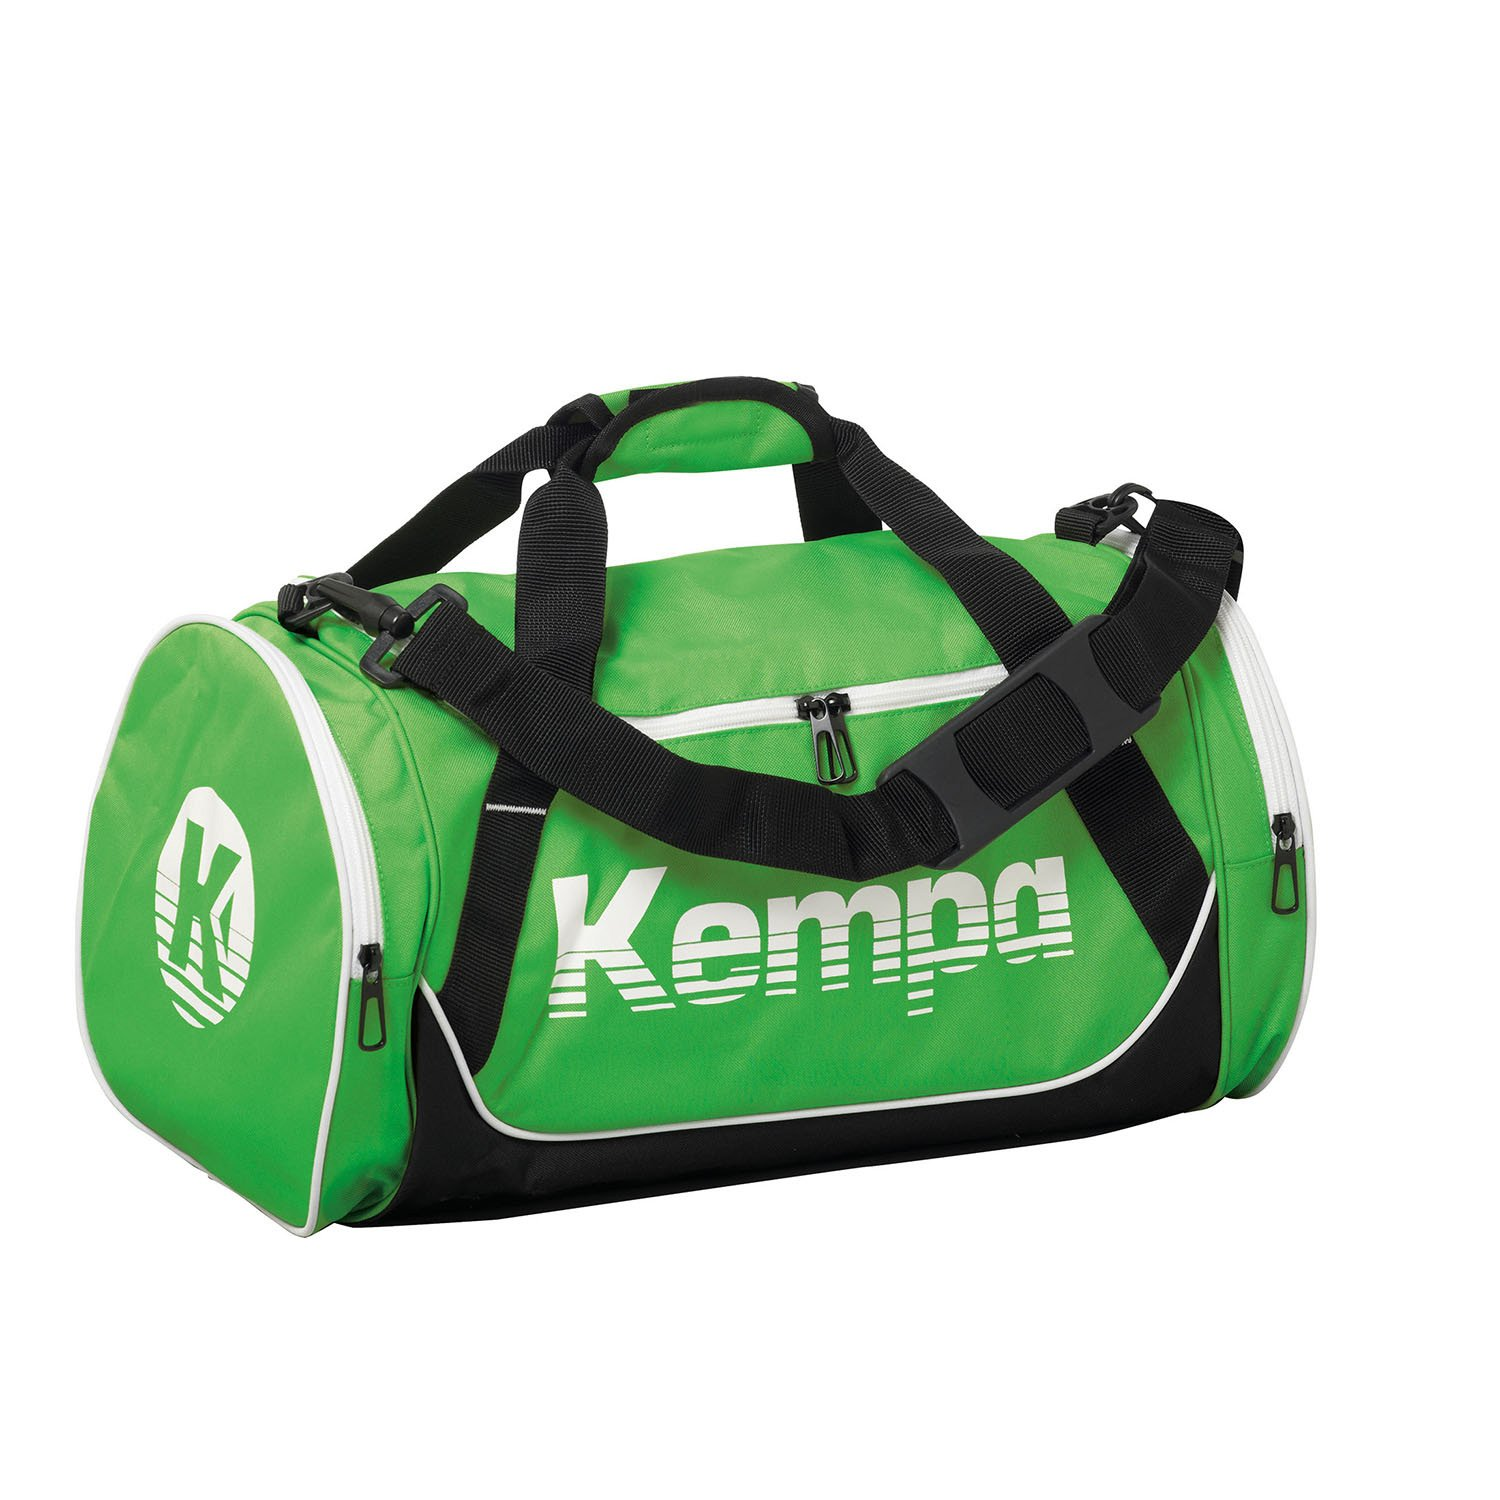 Kempa Sports Bag 30 L 200489605